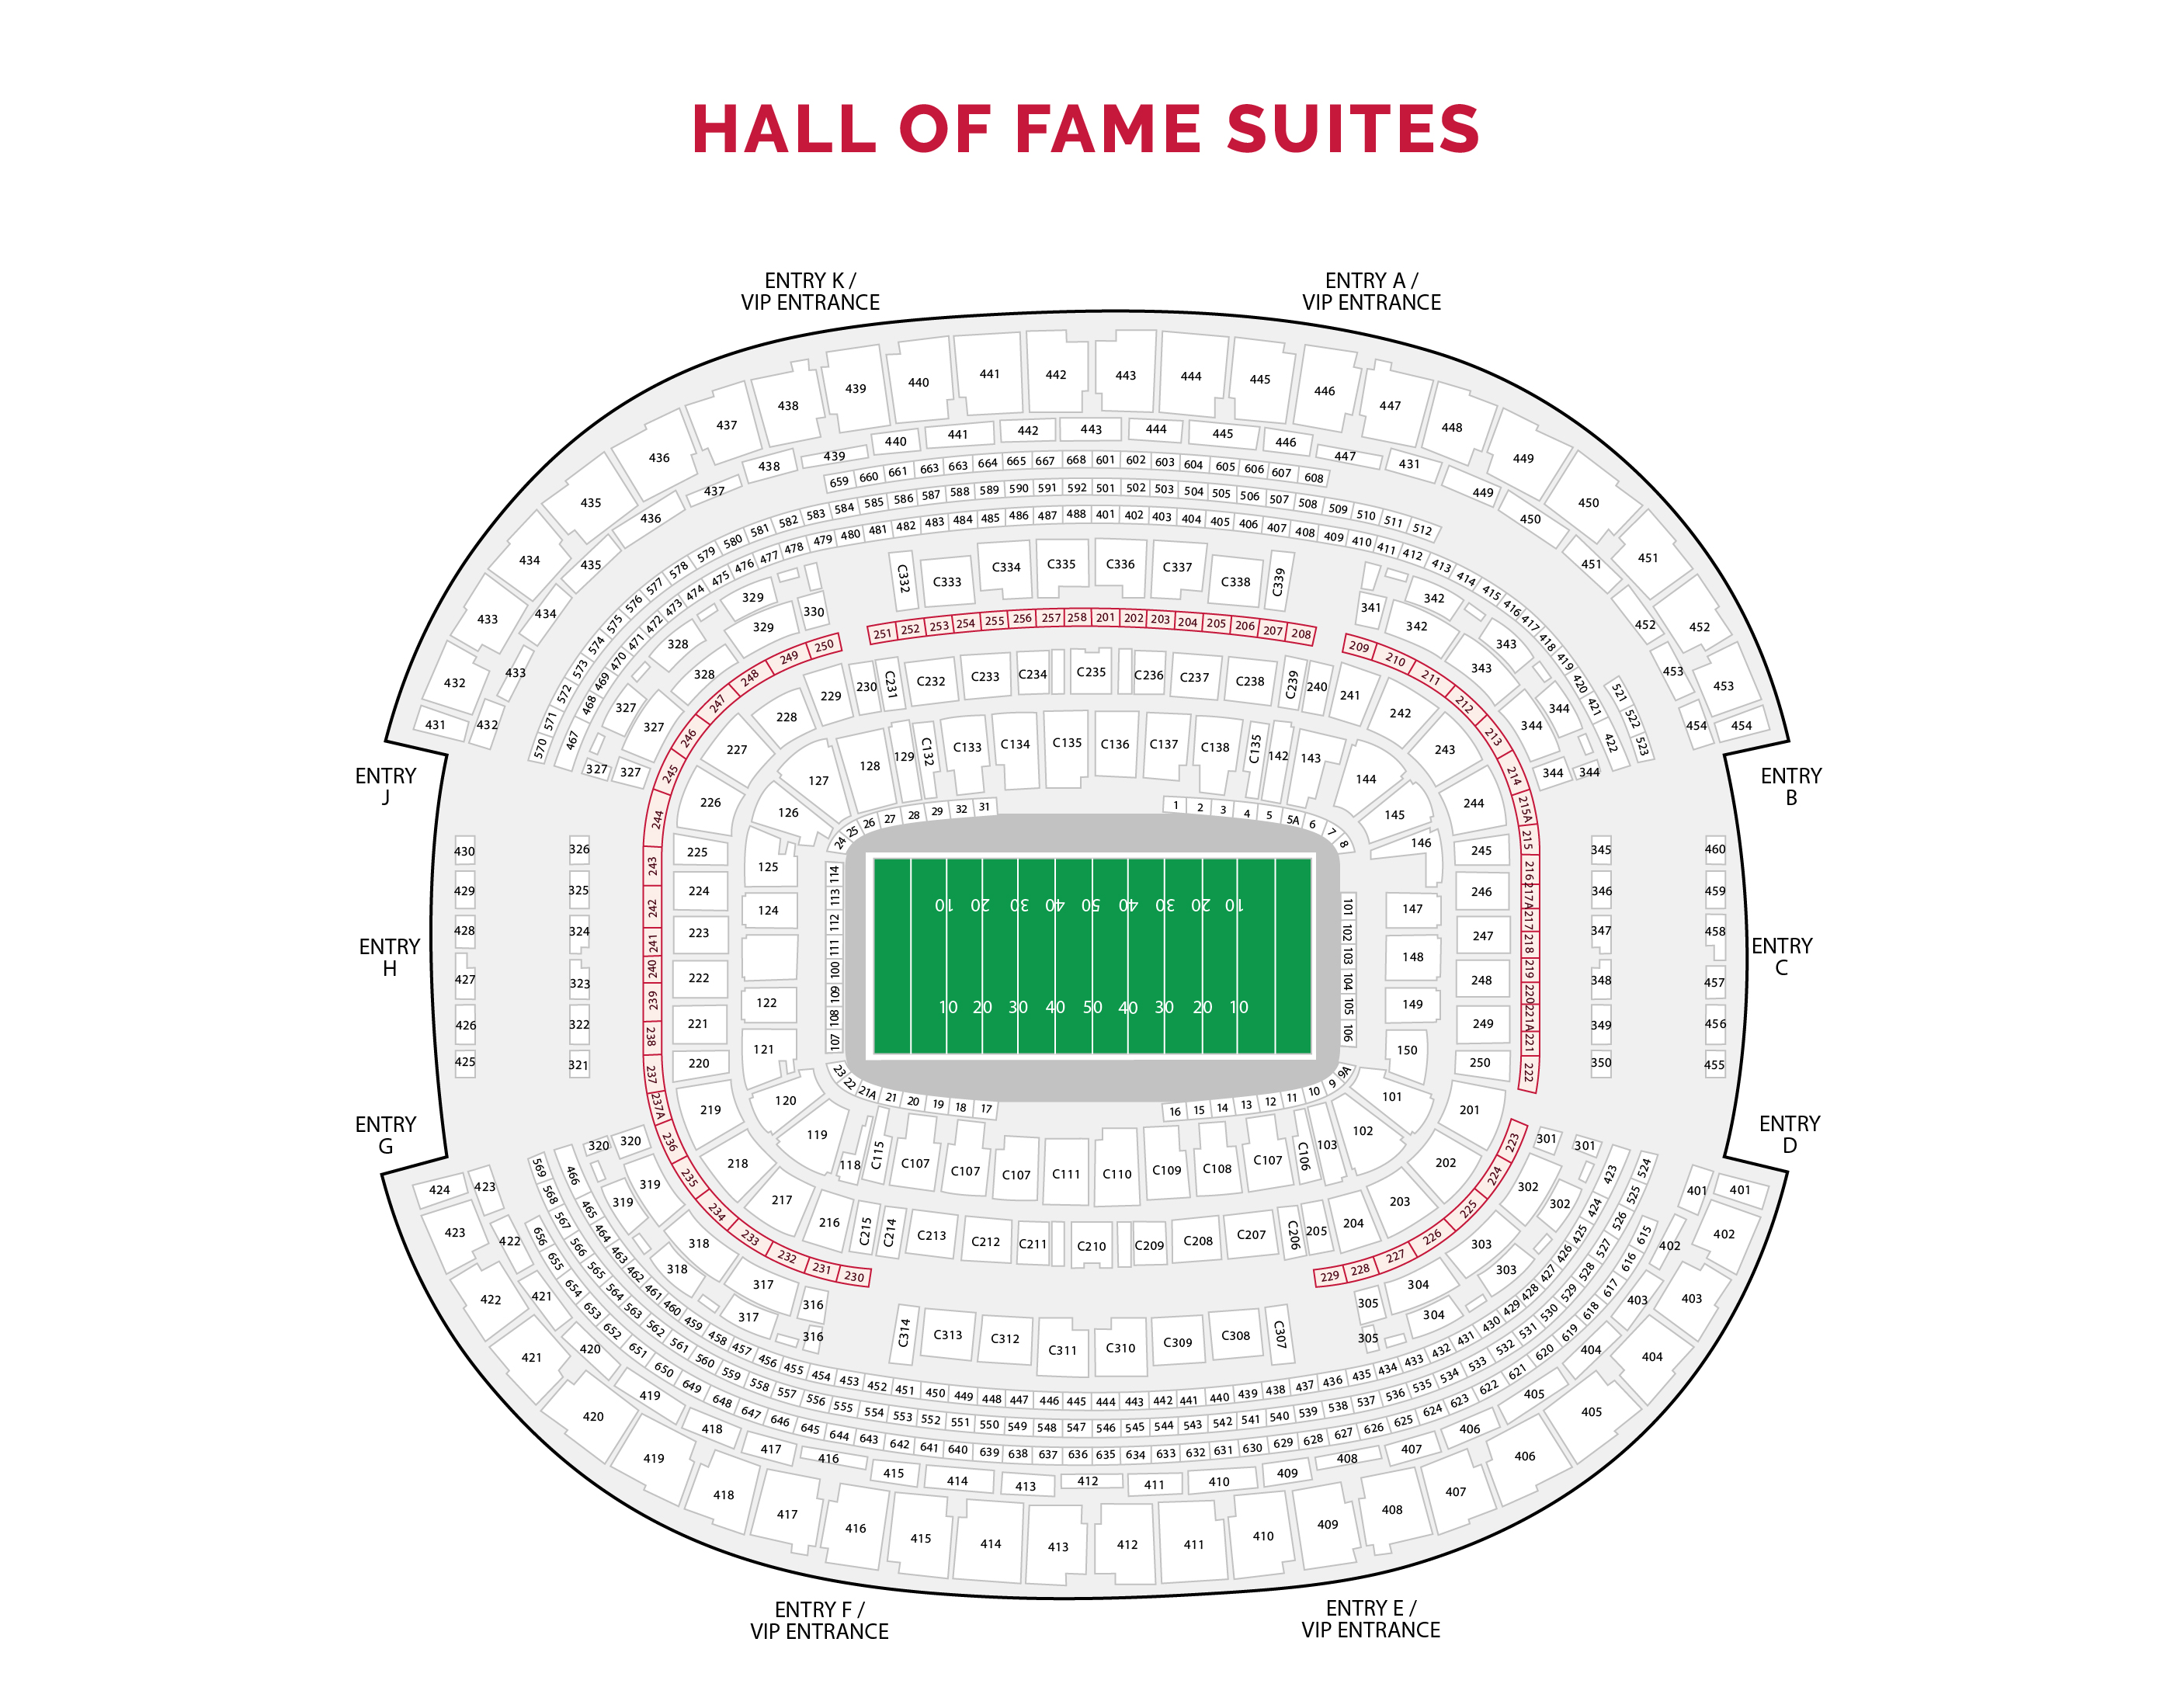 Hall of Fame Suites